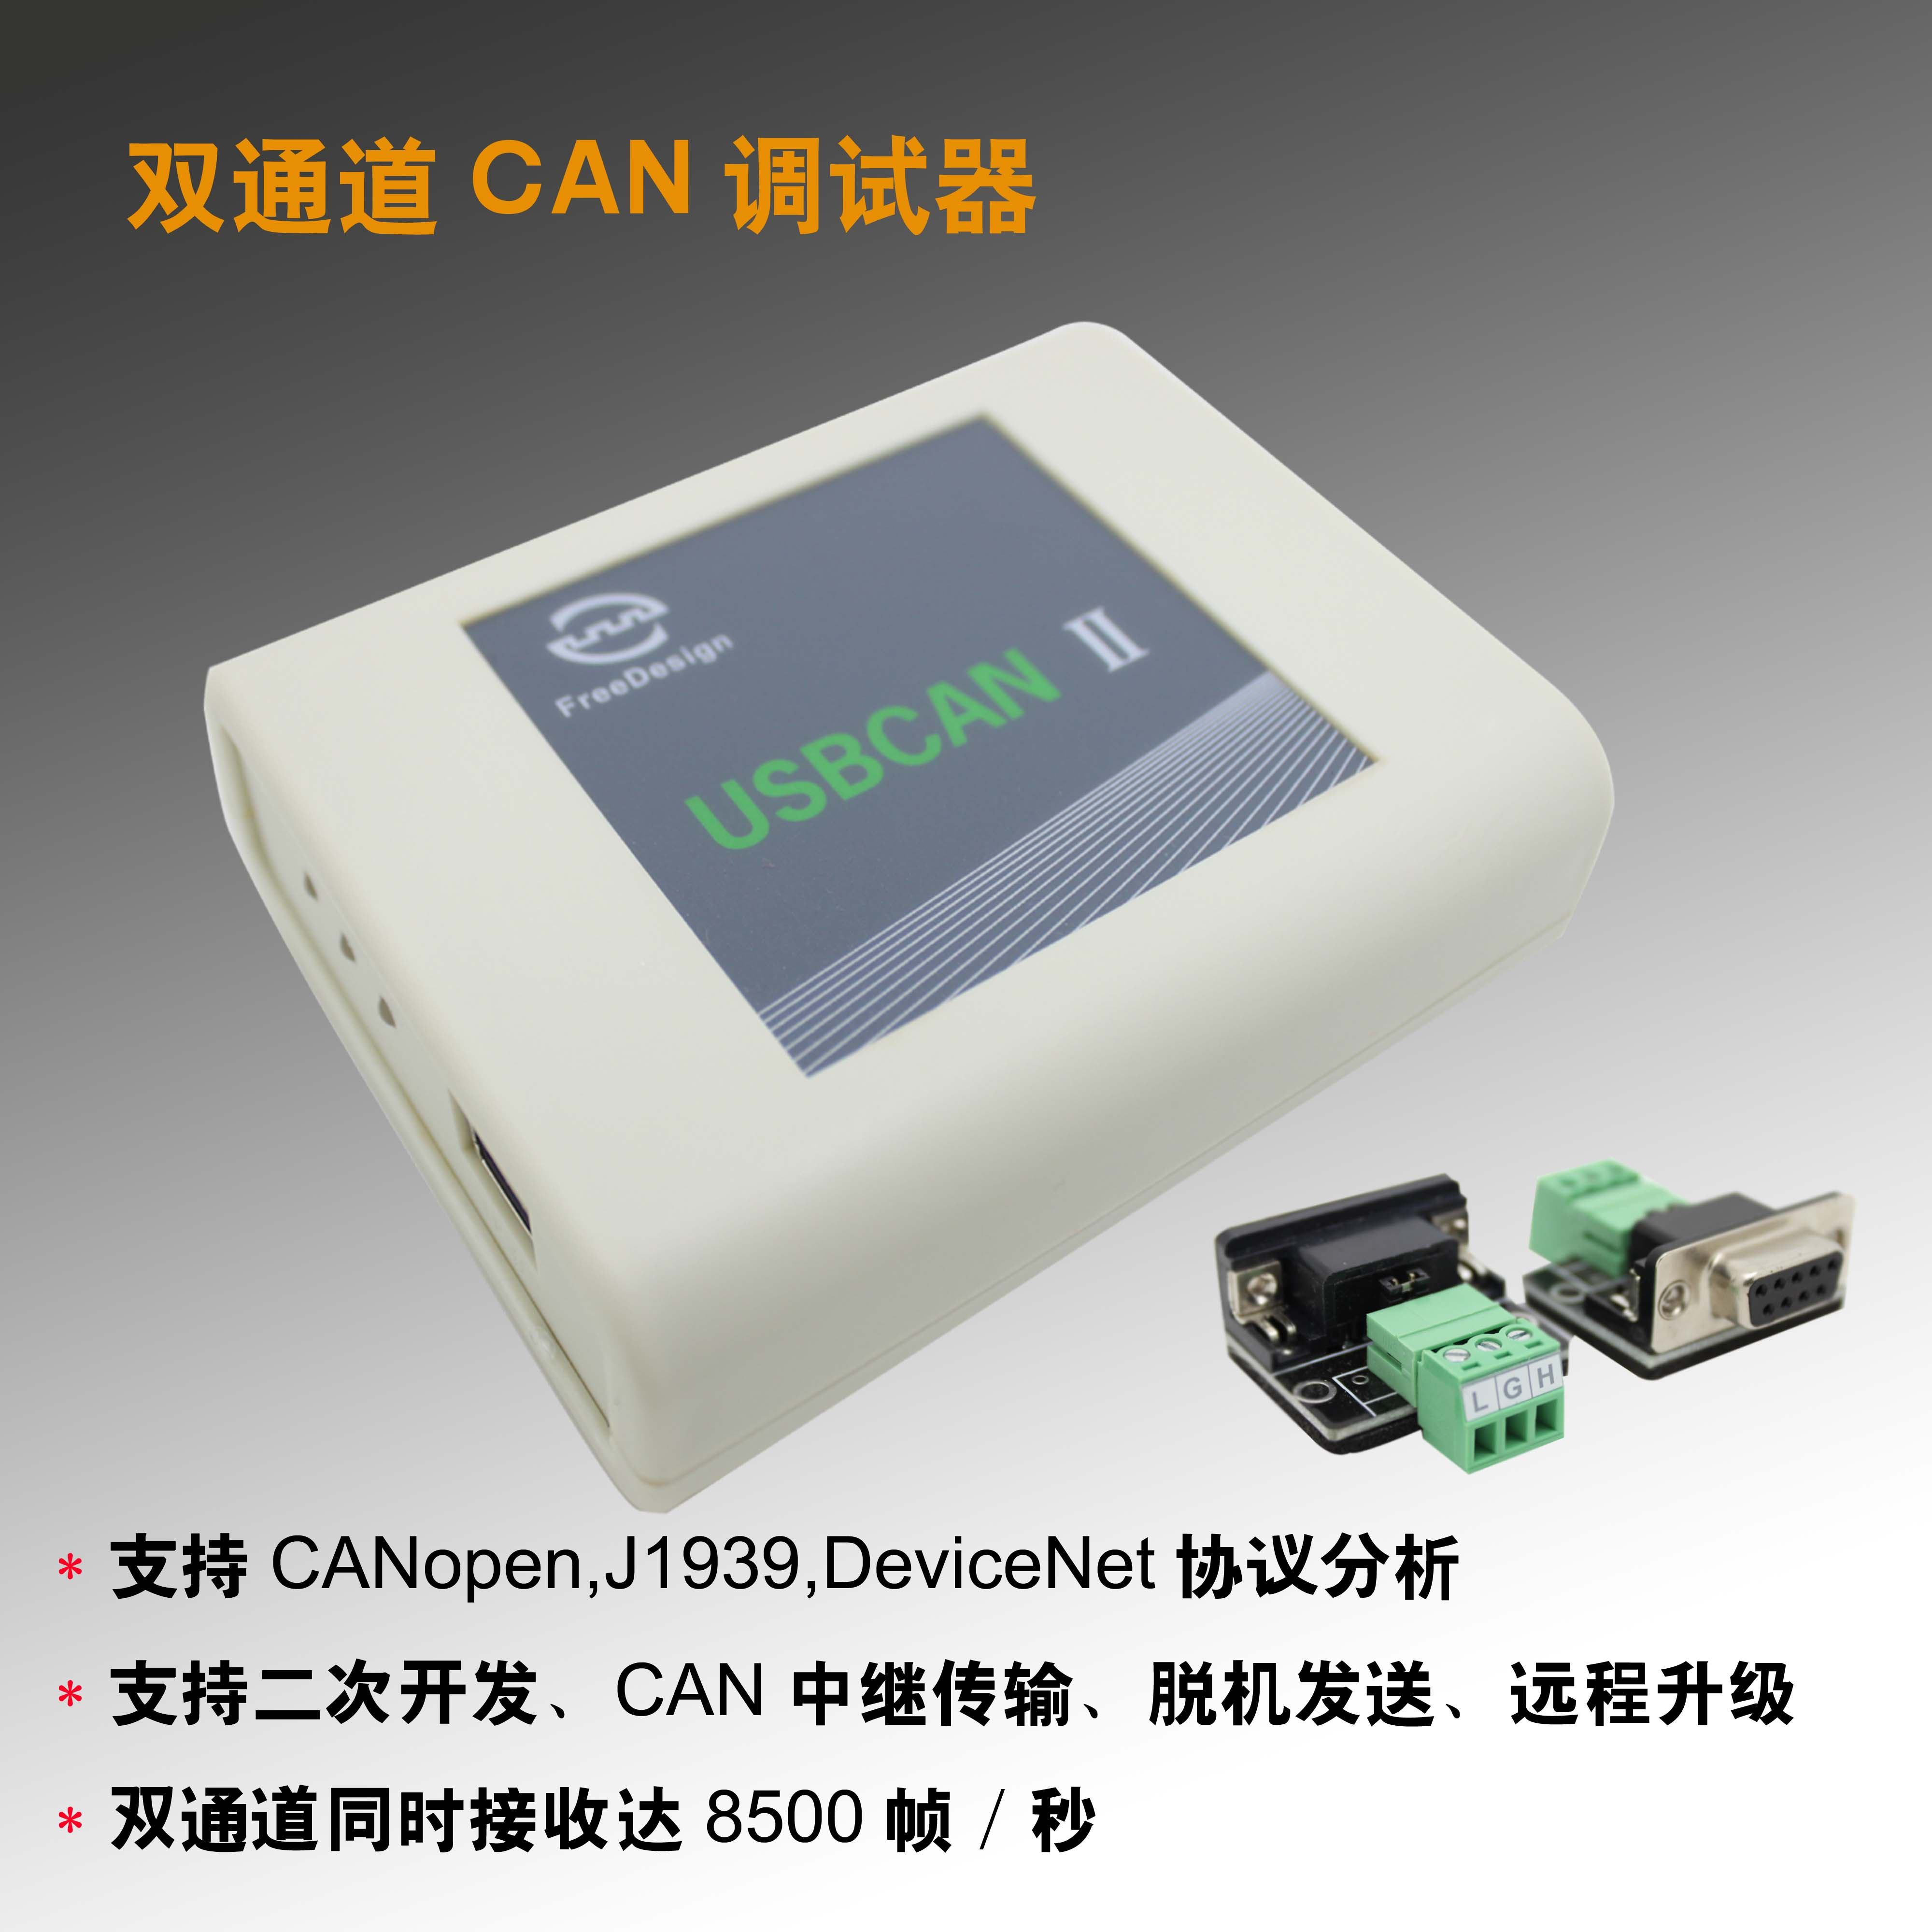 USBCAN II Industrial Dual Channel CAN High Speed Reception Supports CAN Relay Offline Transmission freeshipping usbcan i intelligent can interface card usb can